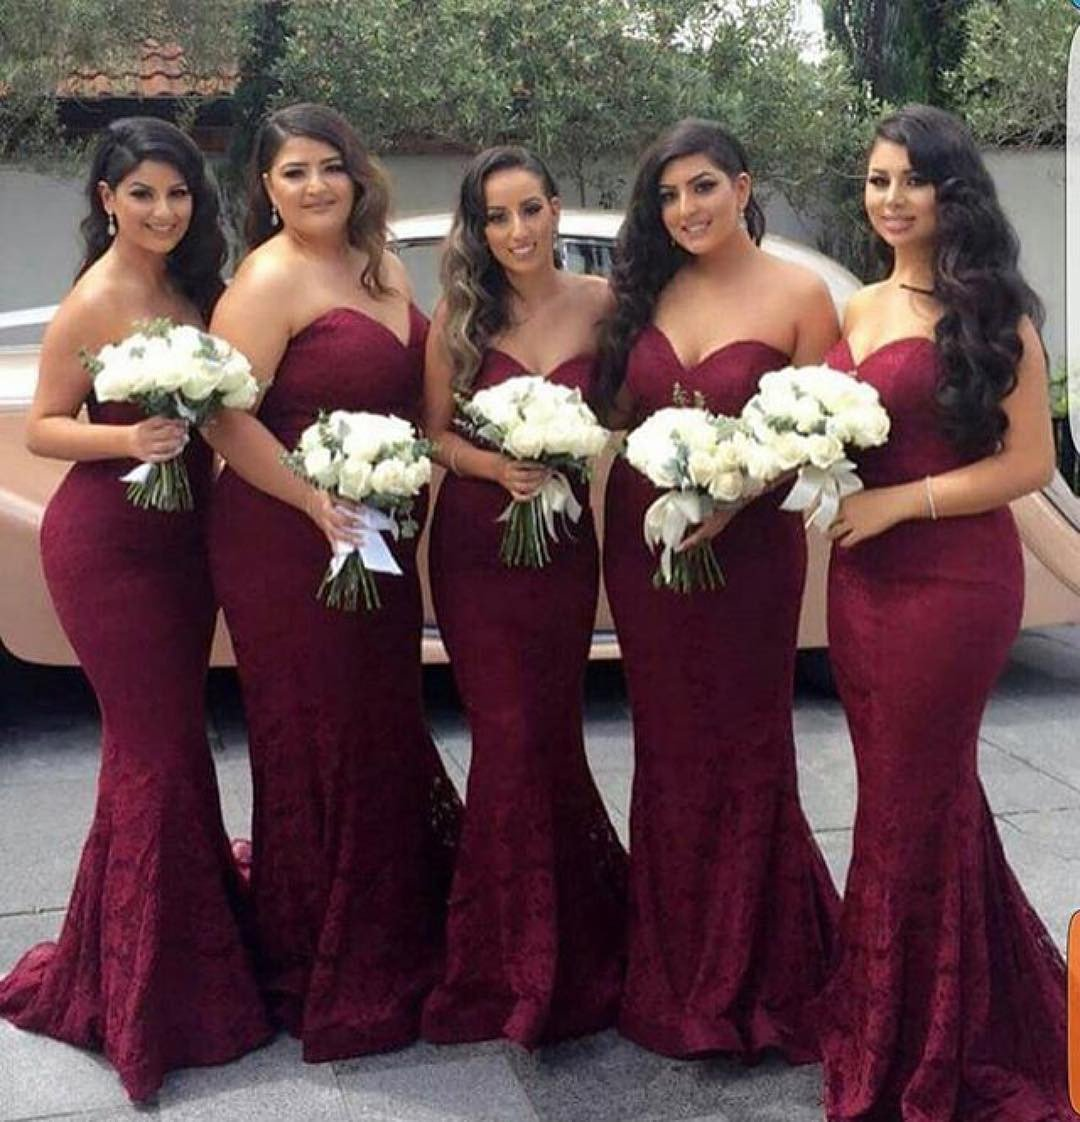 cffd22456b0 Sexy Maroon Sweetheart Floor-Length Satin Prom dresses Mermaid Bridesmaid  Dresses